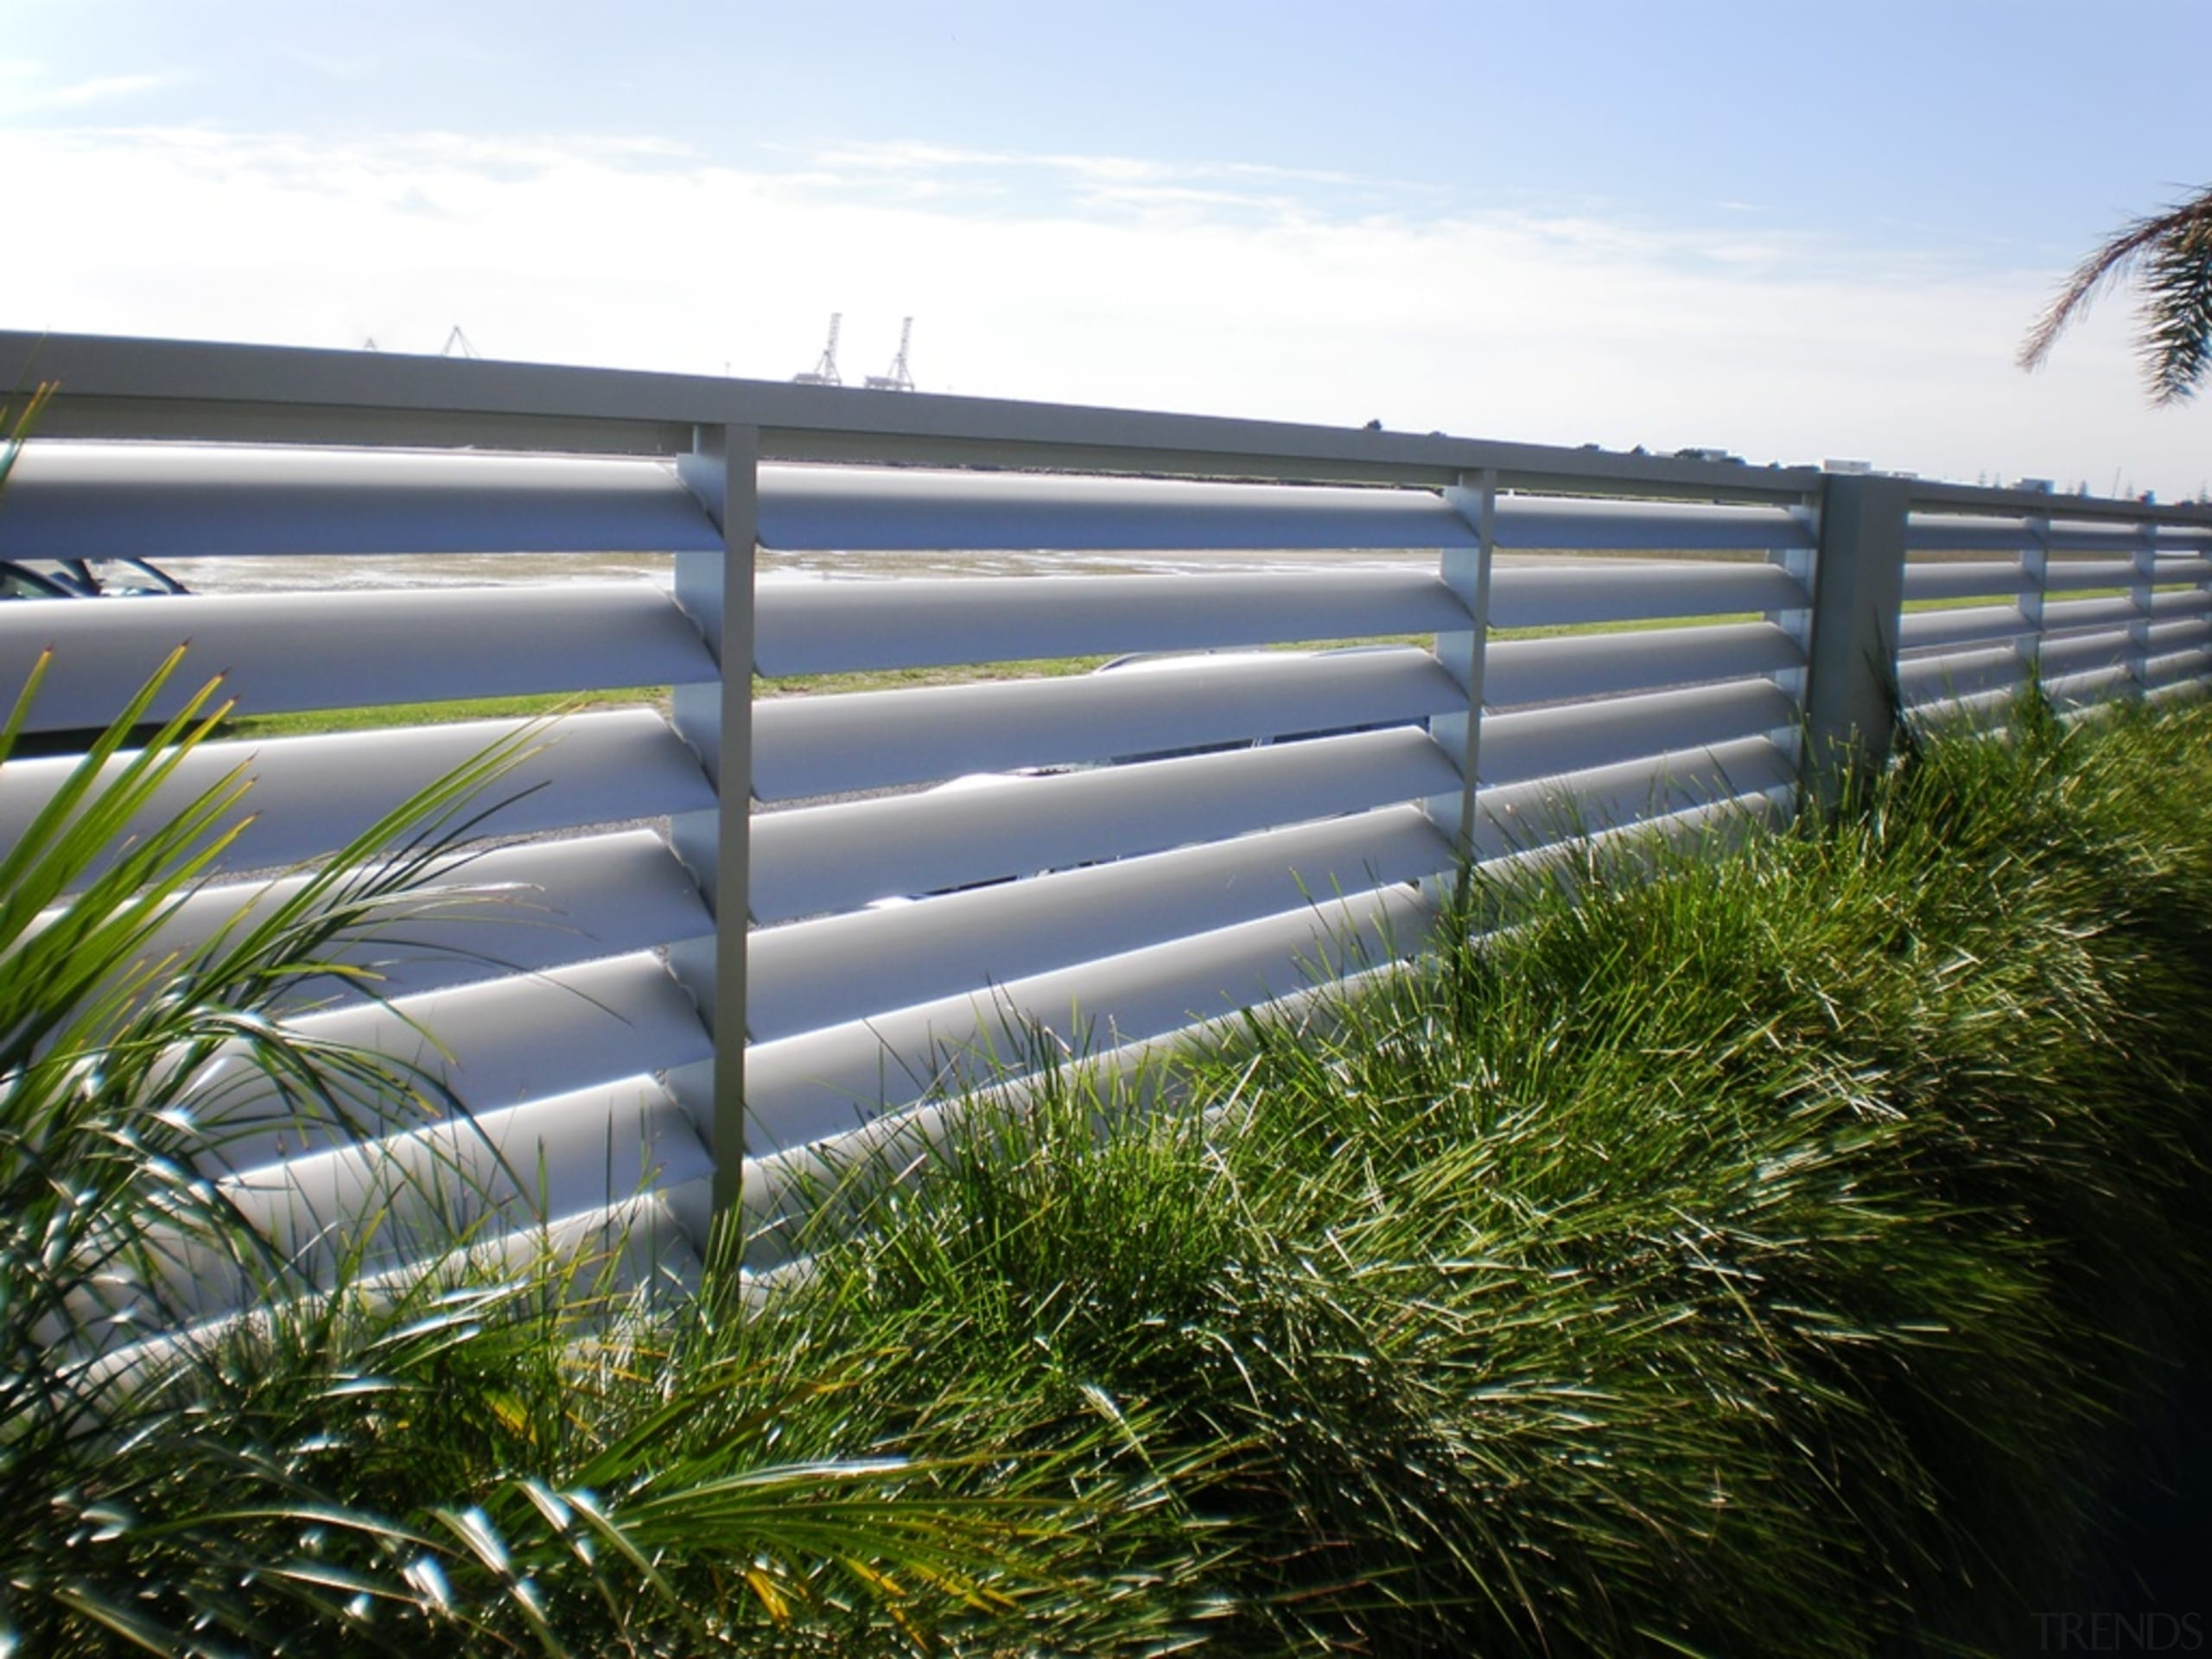 78580_louvretec-new-zealand-ltd_1556758067 - architecture   fence   grass   architecture, fence, grass, grass family, guard rail, home fencing, line, plant, sky, tree, vegetation, wall, water, white